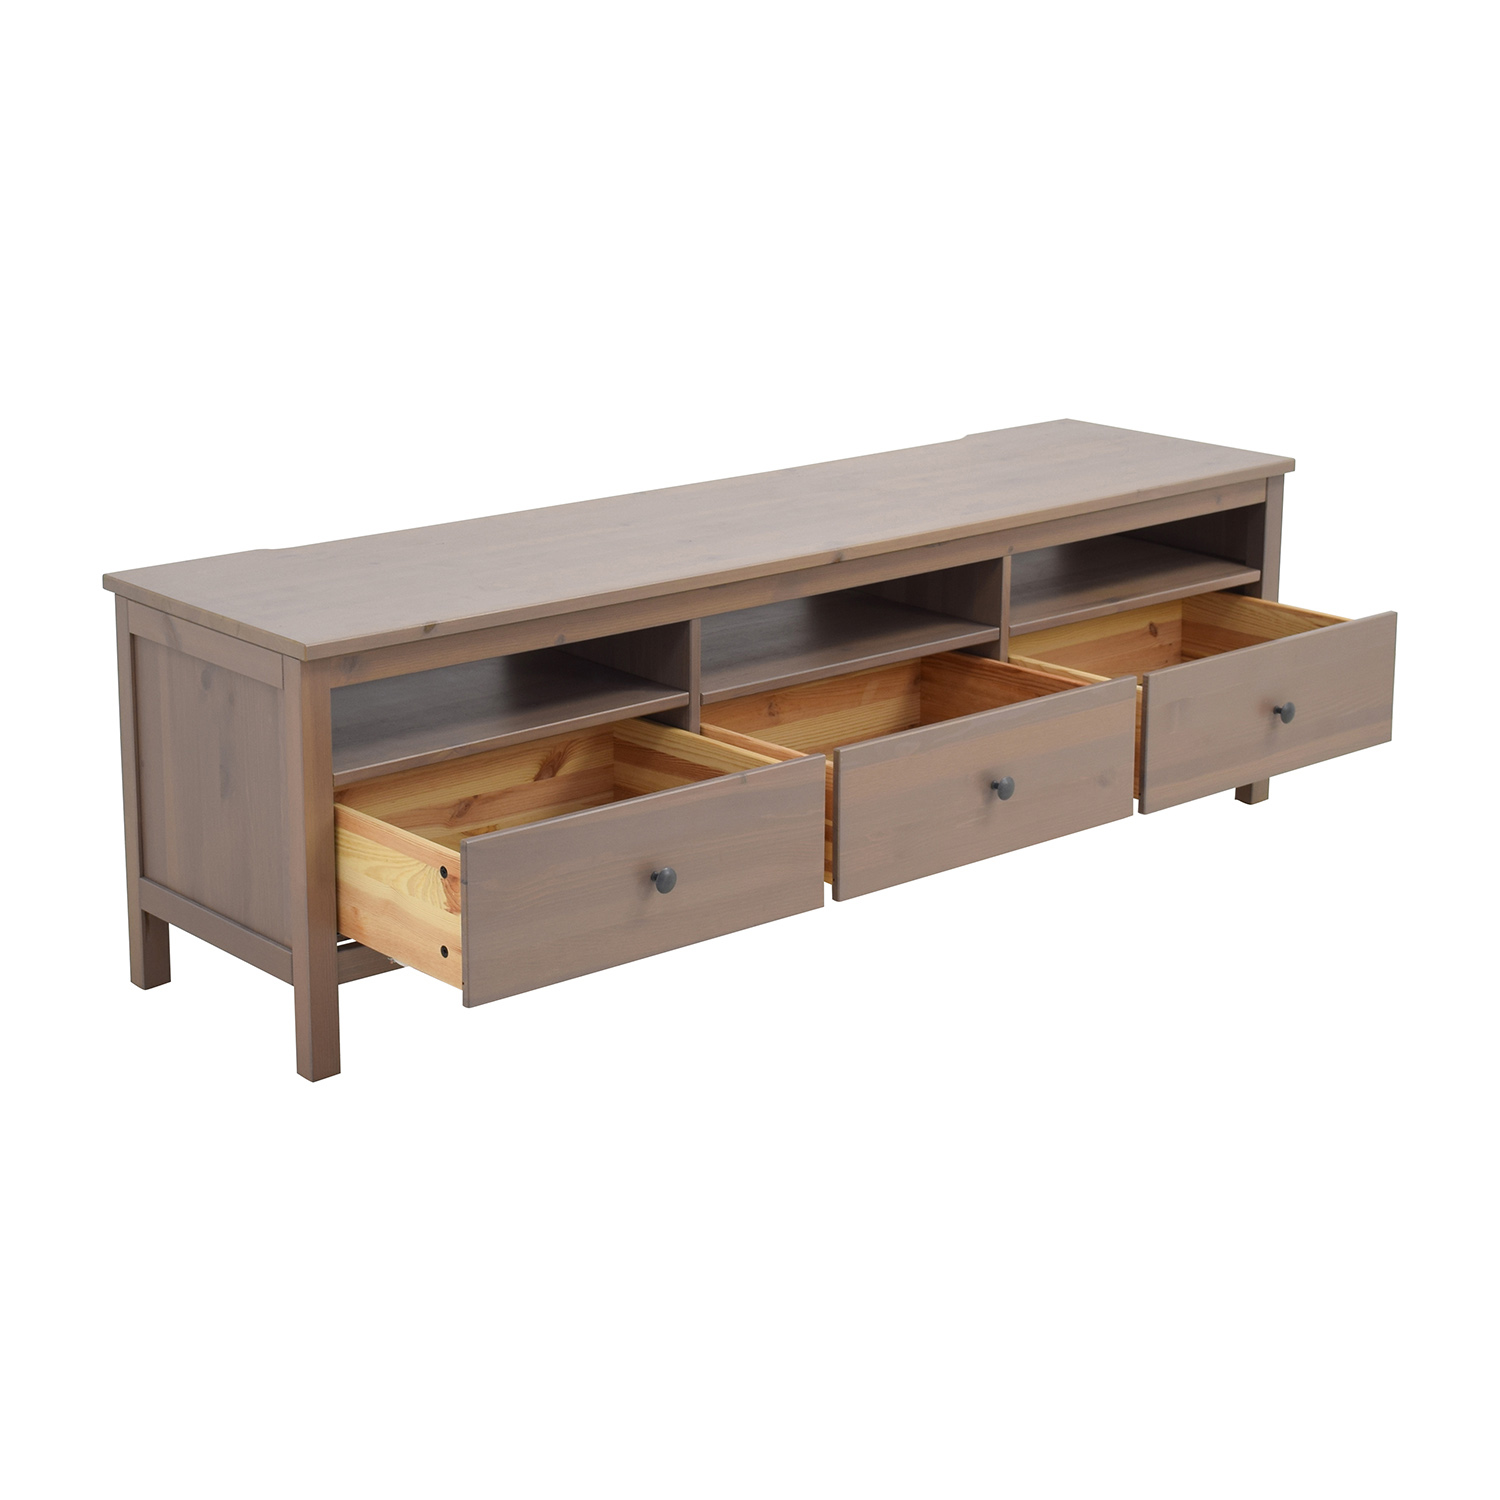 62% OFF - IKEA IKEA Hemnes TV Unit with Drawers and Shelves / Storage